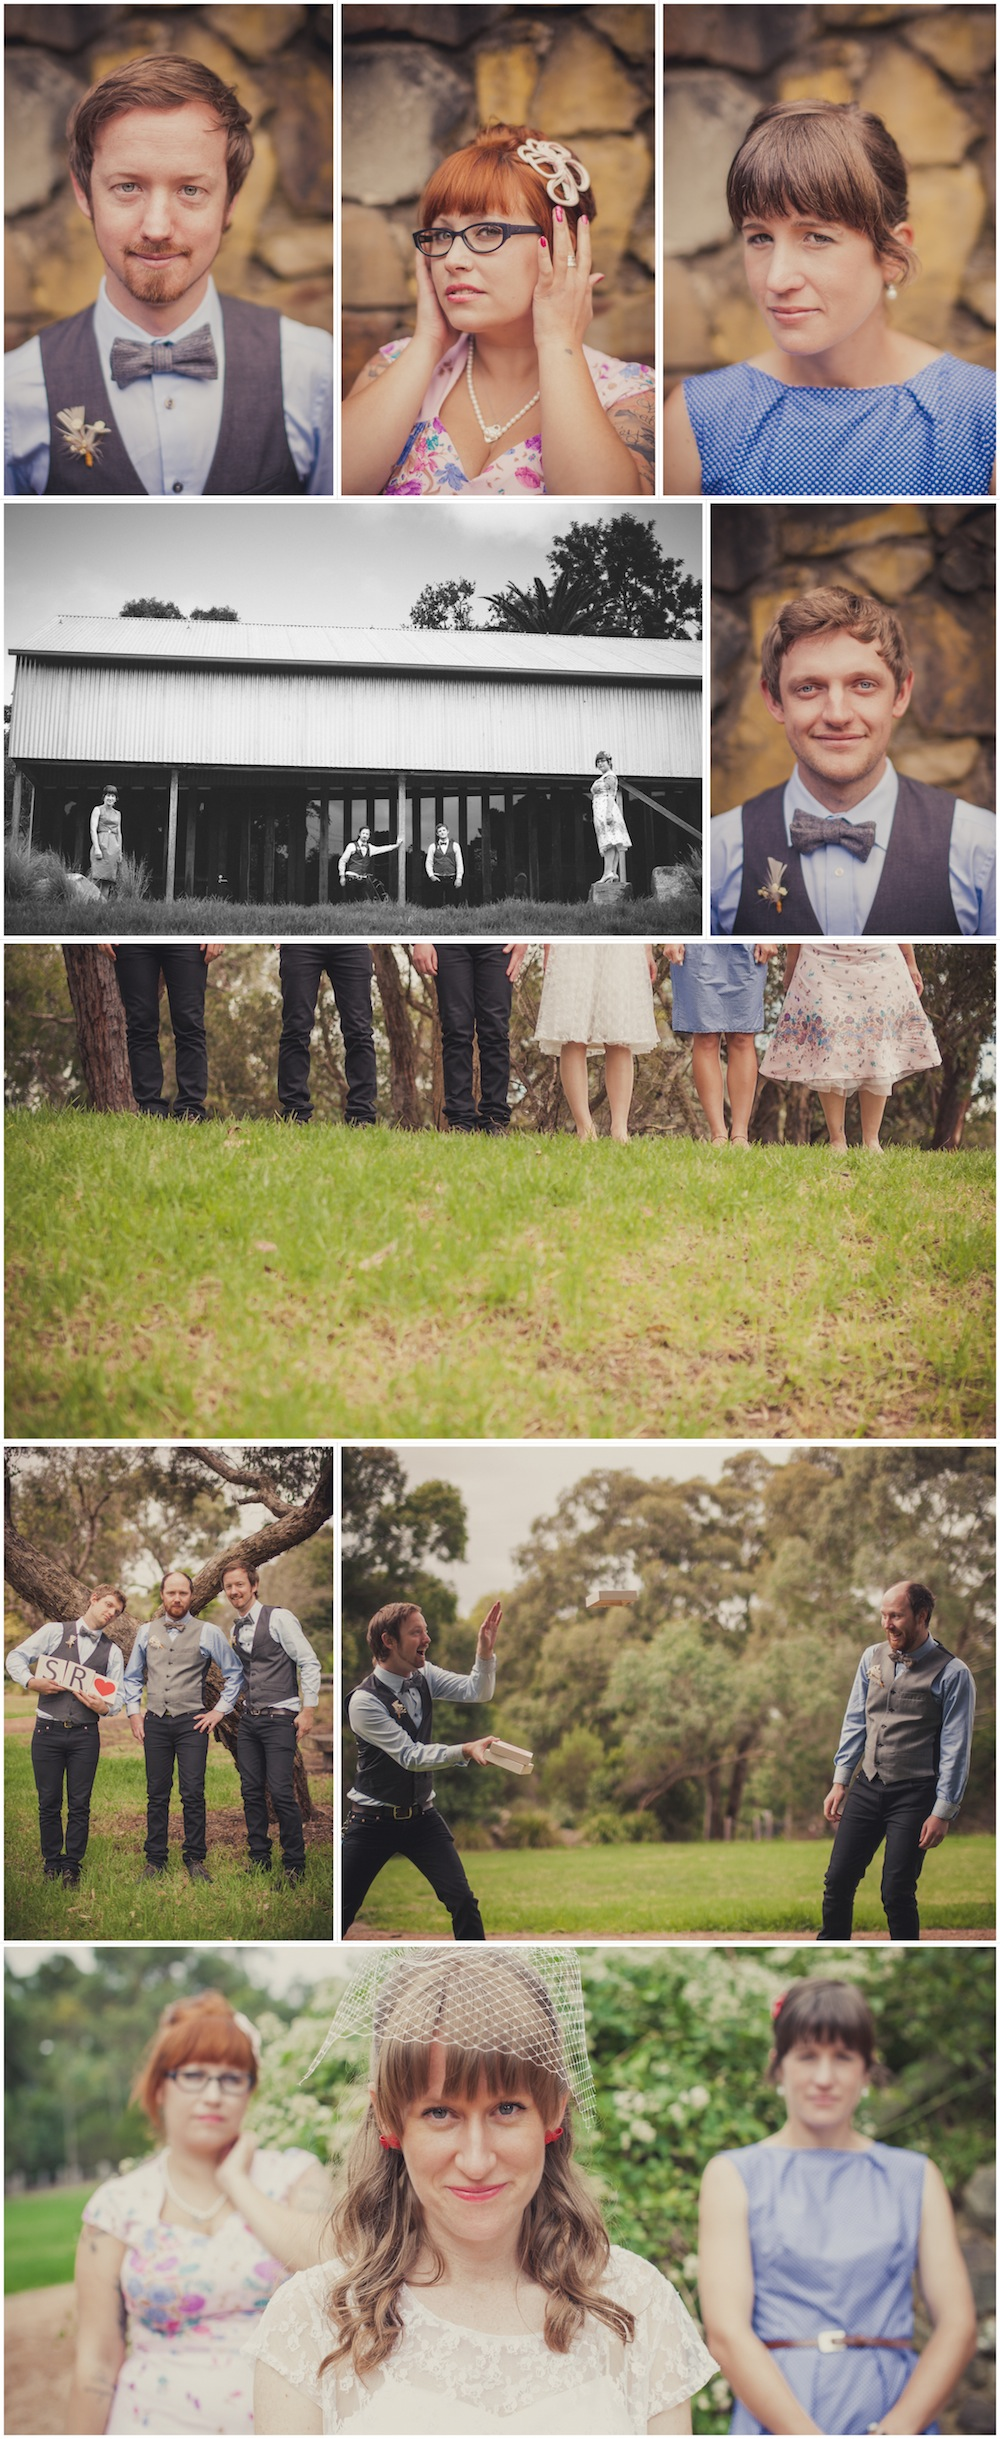 Sharni_&_Ryan_Vintage_Melbourne_Wedding-17